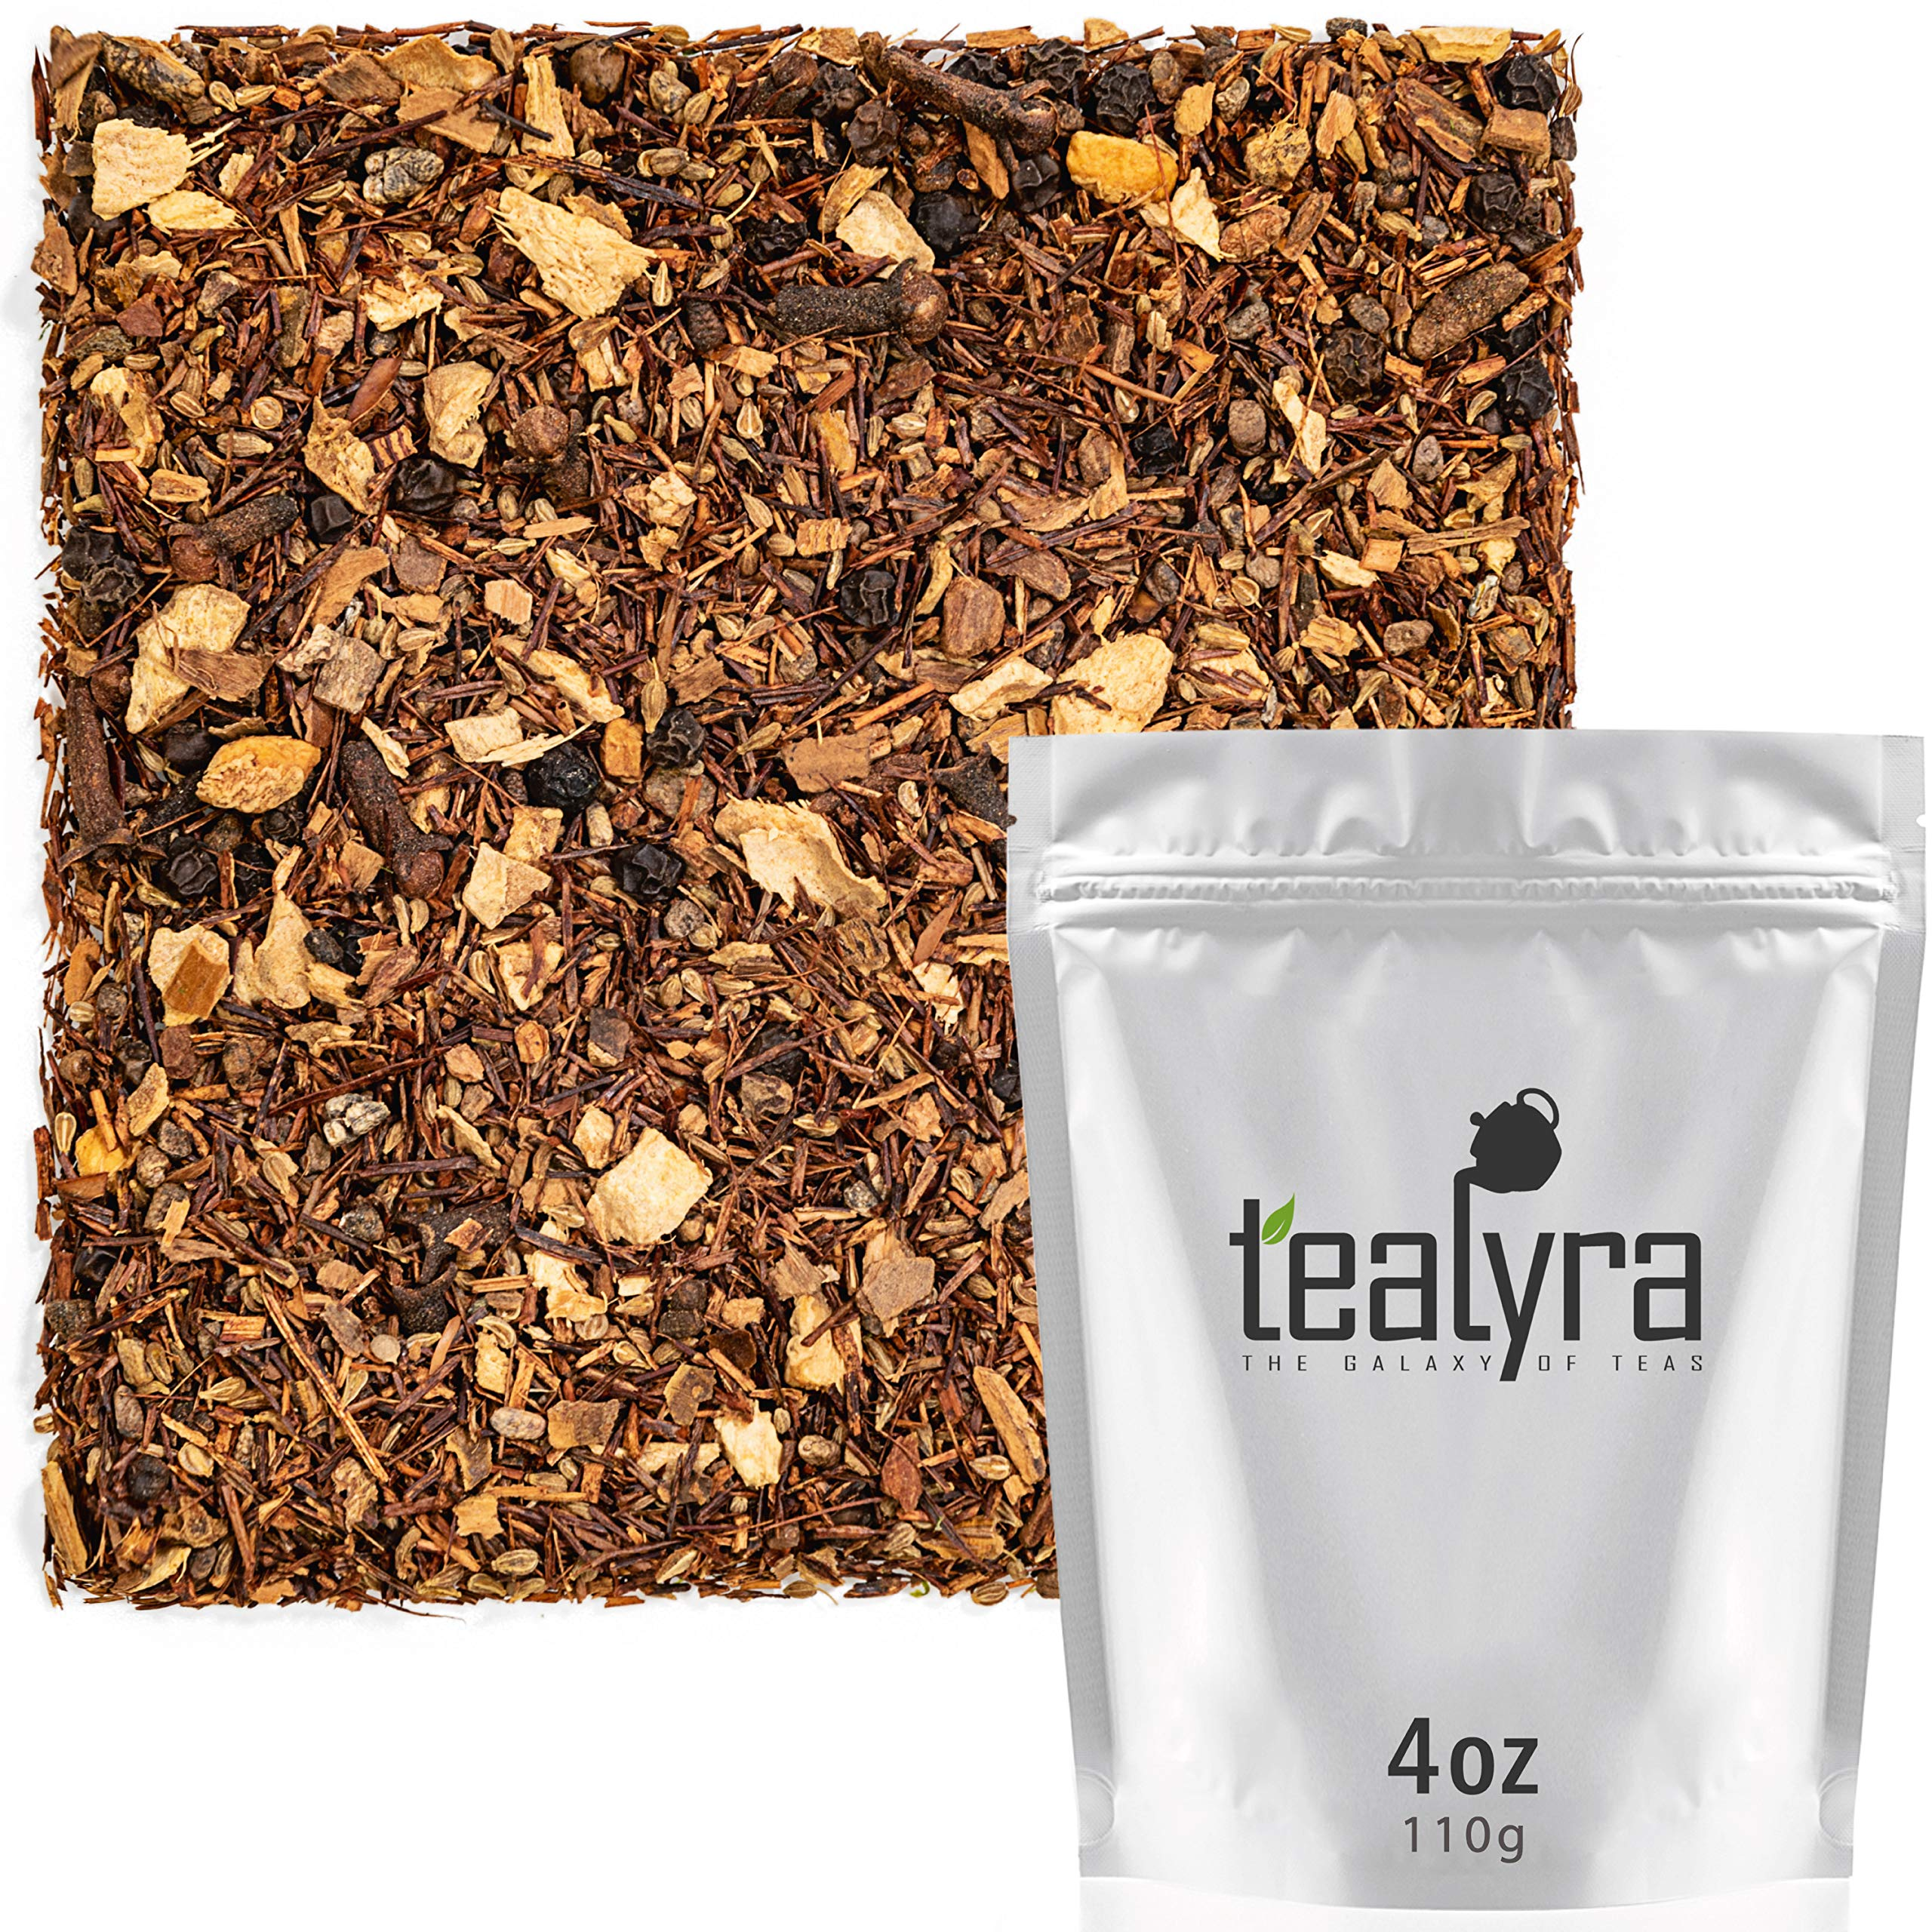 Tealyra - Rooibos - Red Burner Chai - Ginger - Anise - Cinnamon - Red Bush Tea - Spicy Herbal Loose Leaf Tea - Antioxidants Rich - Caffeine-Free - 110g (4-ounce)